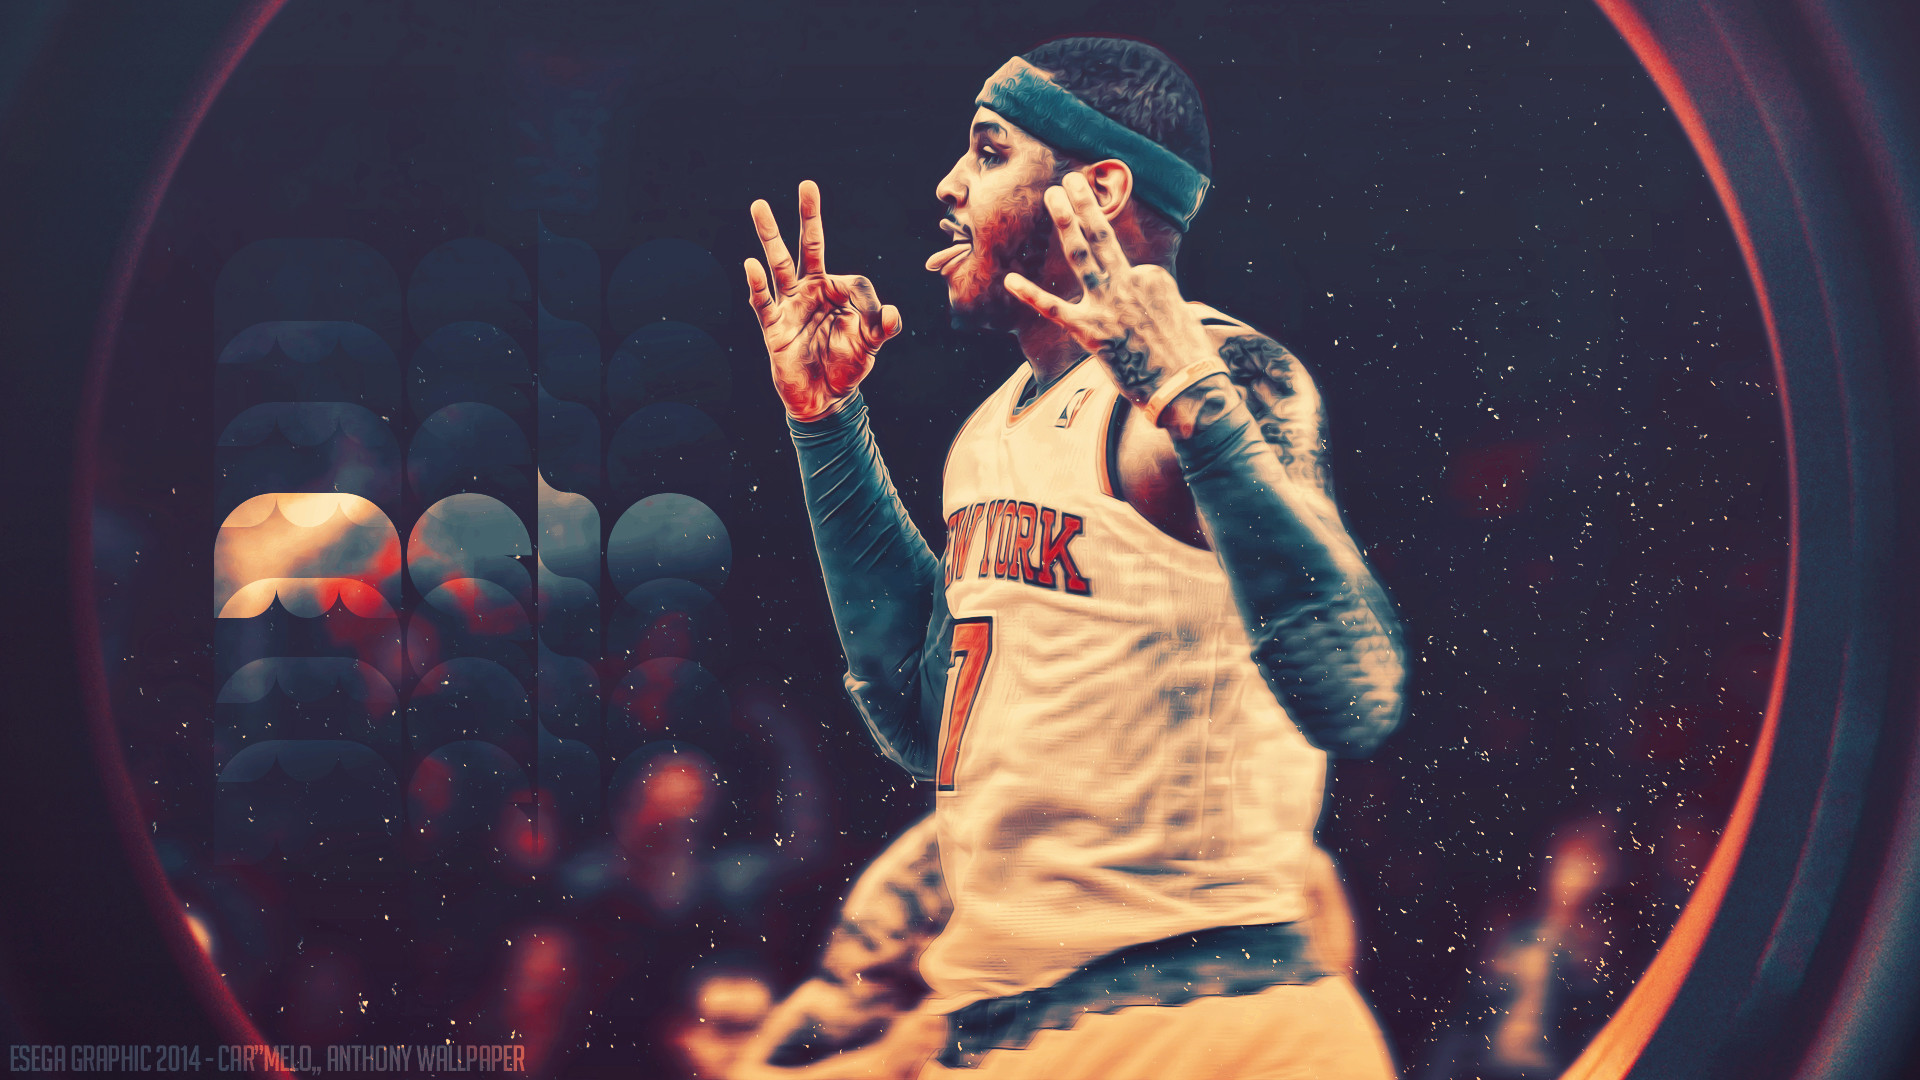 1920x1080 Carmelo Anthony Nyk Wallpaper - Version 2 by EsegaGraphic ... Carmelo  Anthony Wallpaper 2014